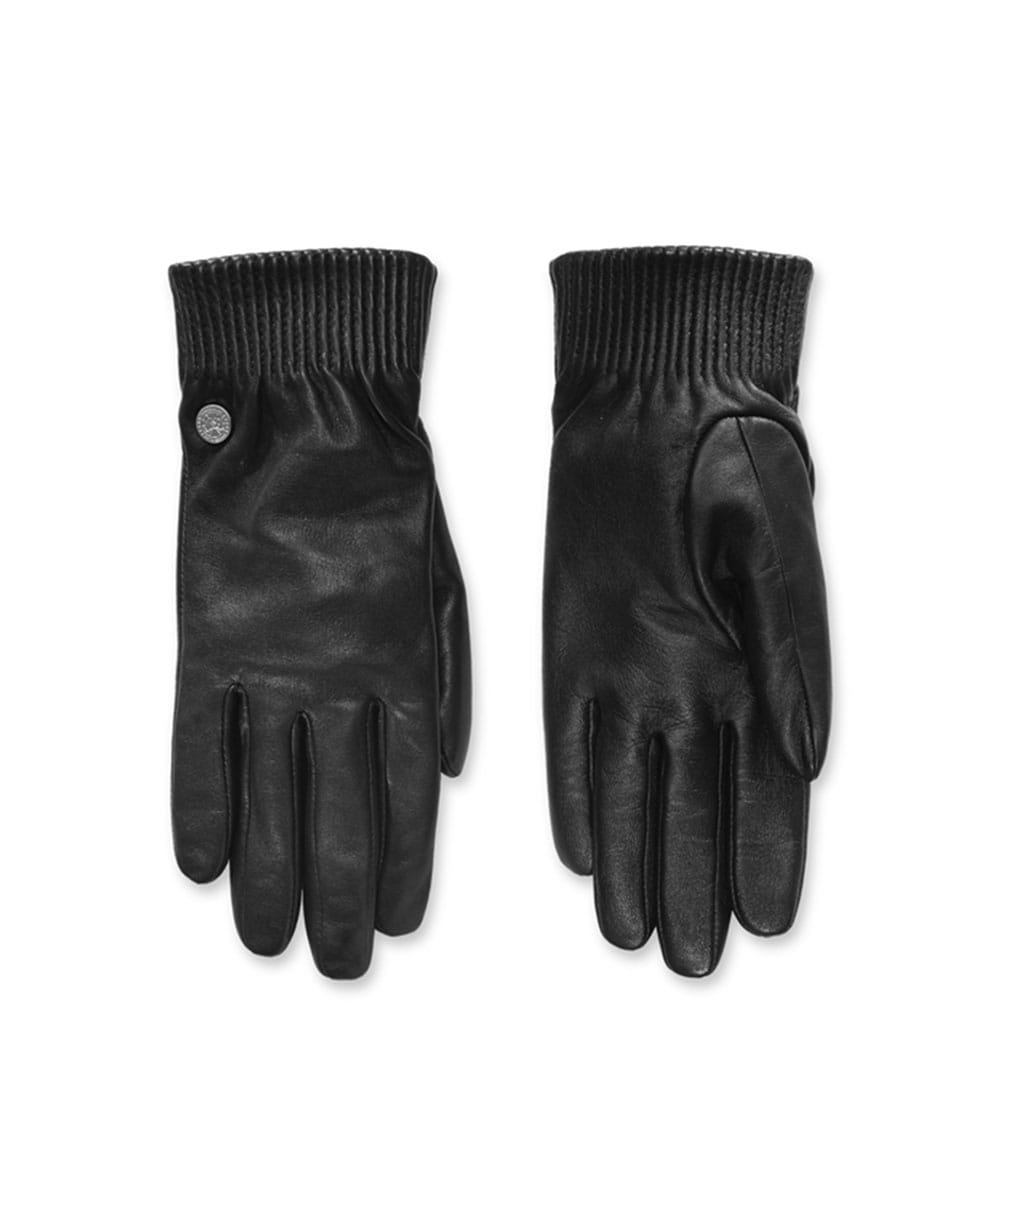 LEATHER RIB GLOVE